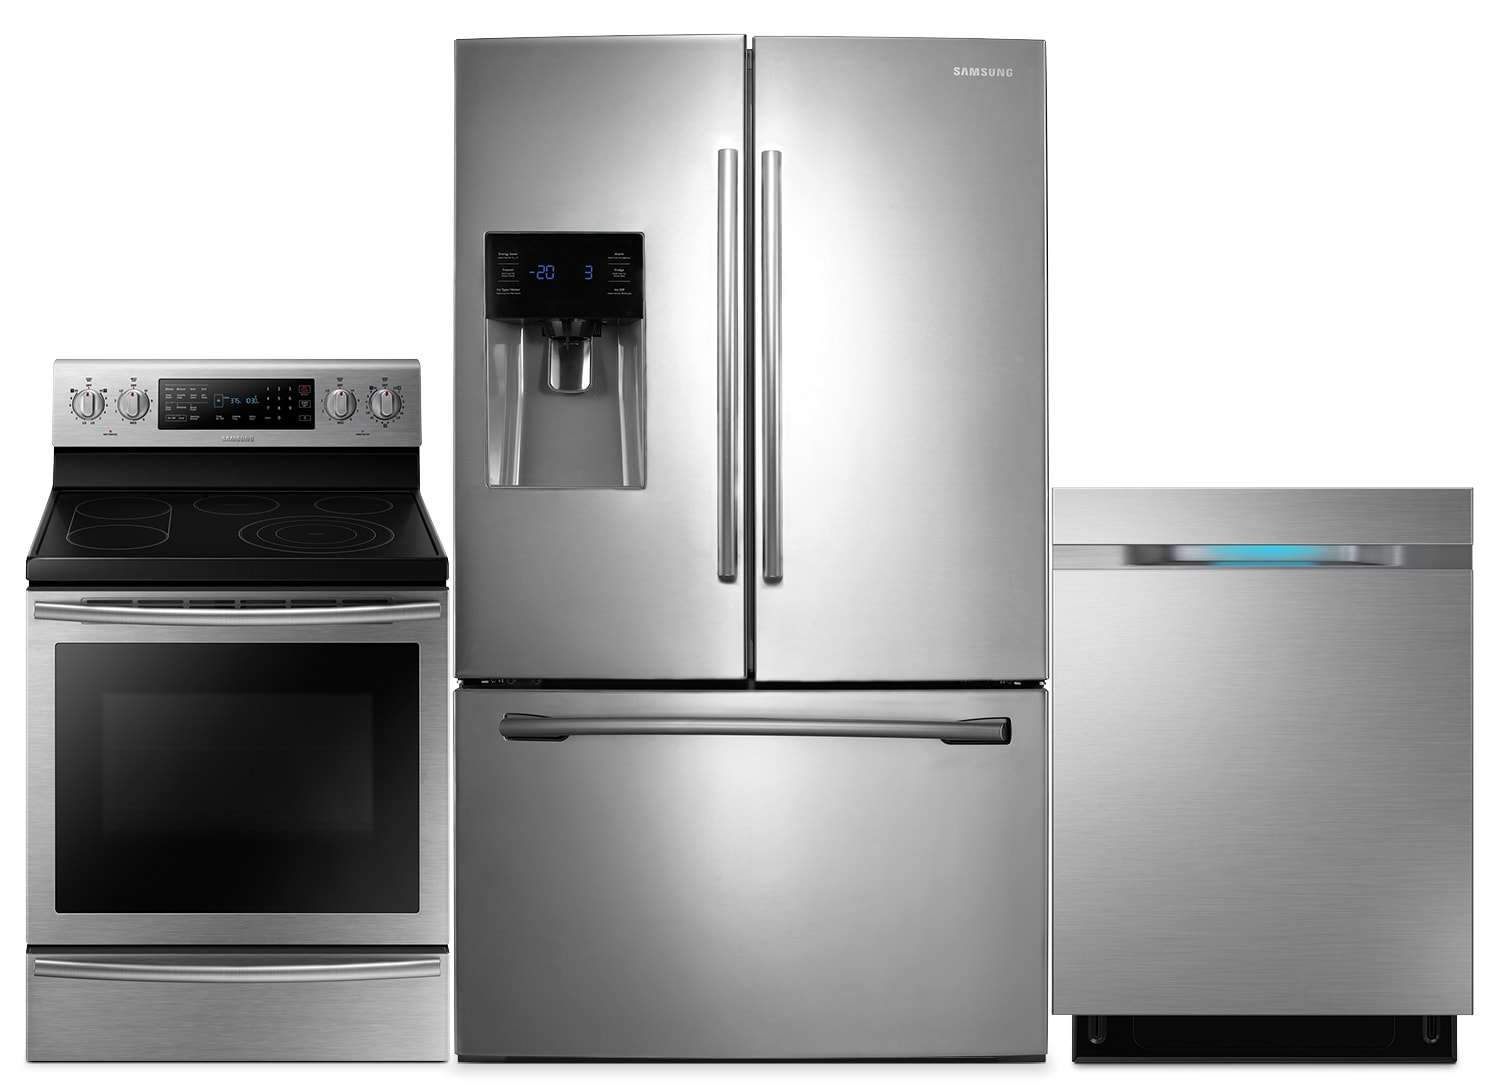 Samsung 26 Cu. Ft. Refrigerator, 5.3 Cu. Ft. Electric Range and Built-In Dishwasher – Stainless Stee